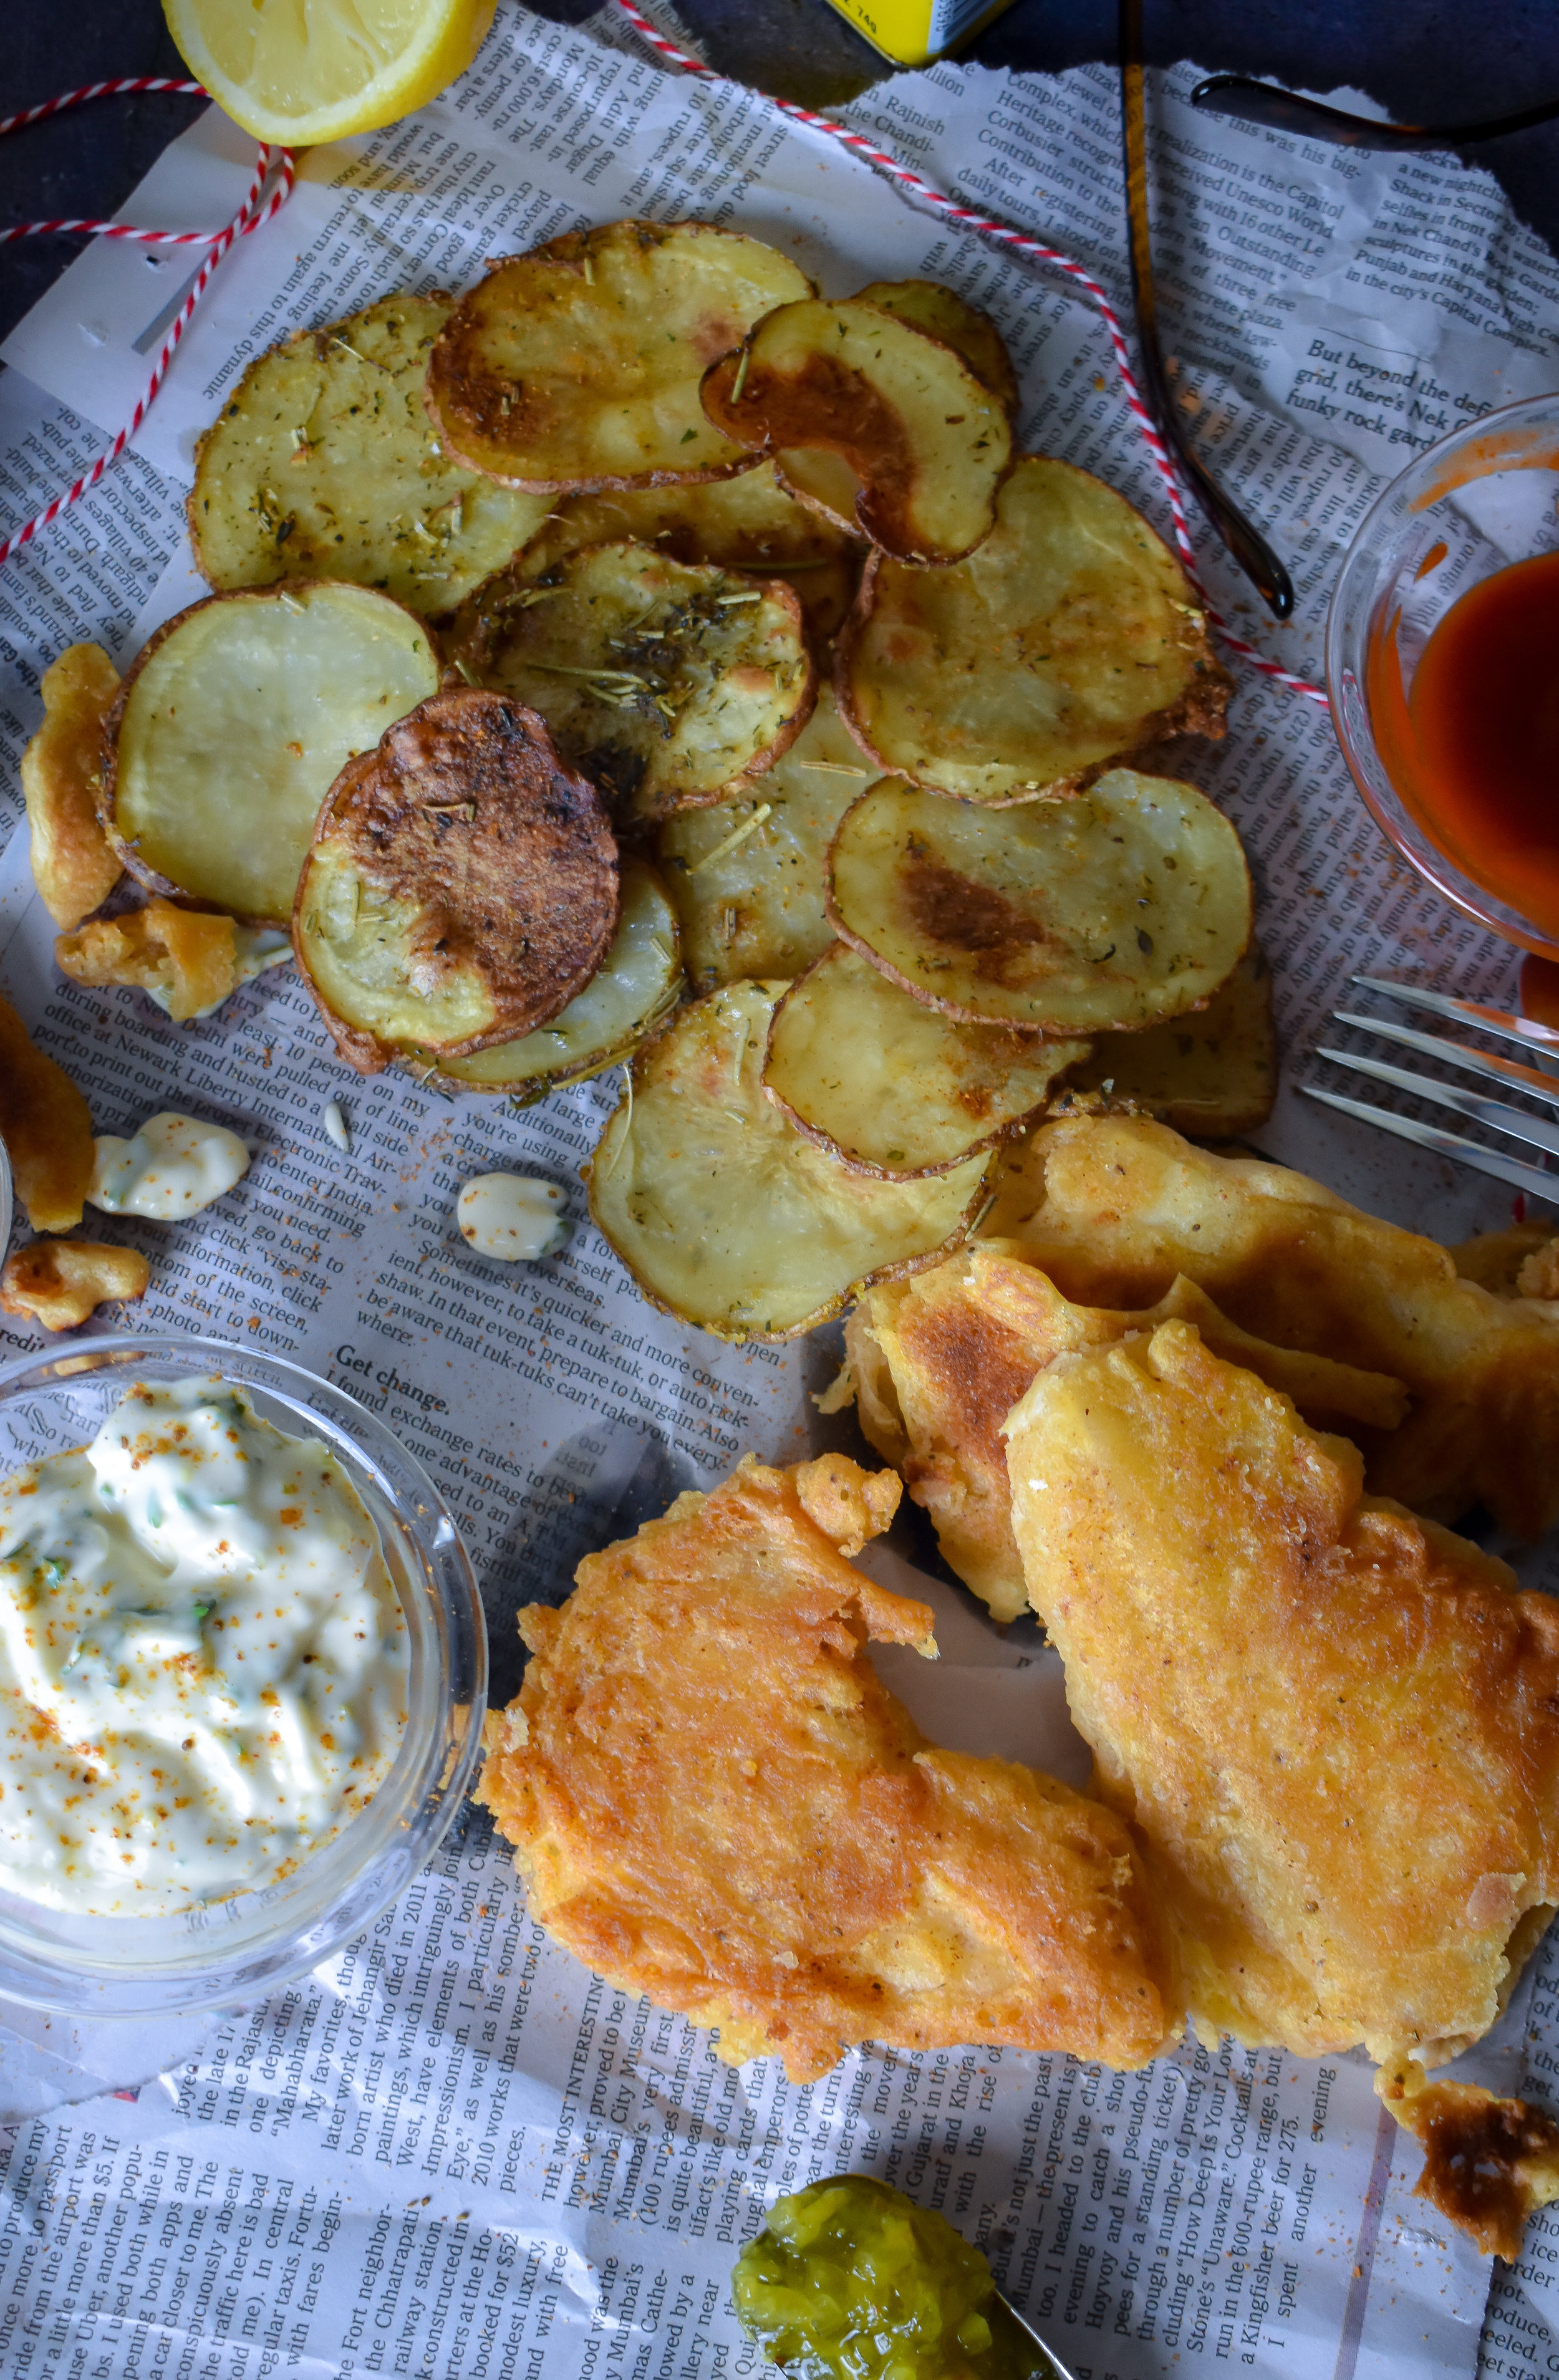 9. Serve up the chips + fish with tartar sauce. Enjoy!